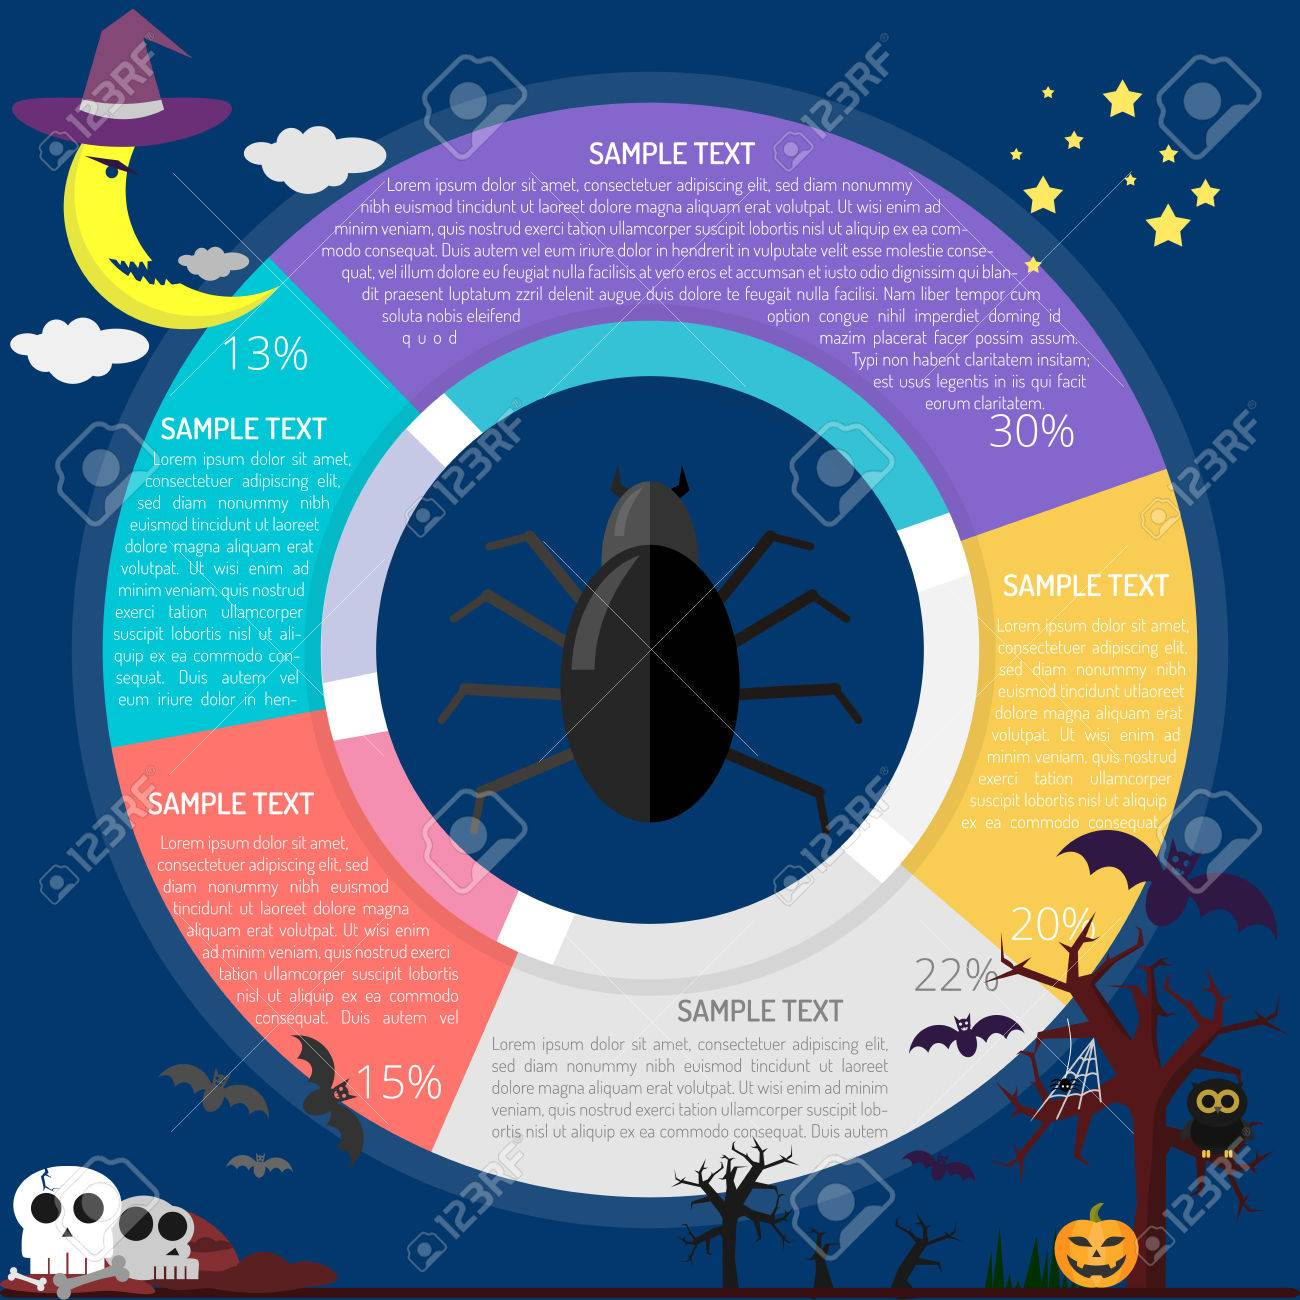 Spider diagram infographic royalty free cliparts vectors and stock spider diagram infographic stock vector 86900362 ccuart Choice Image